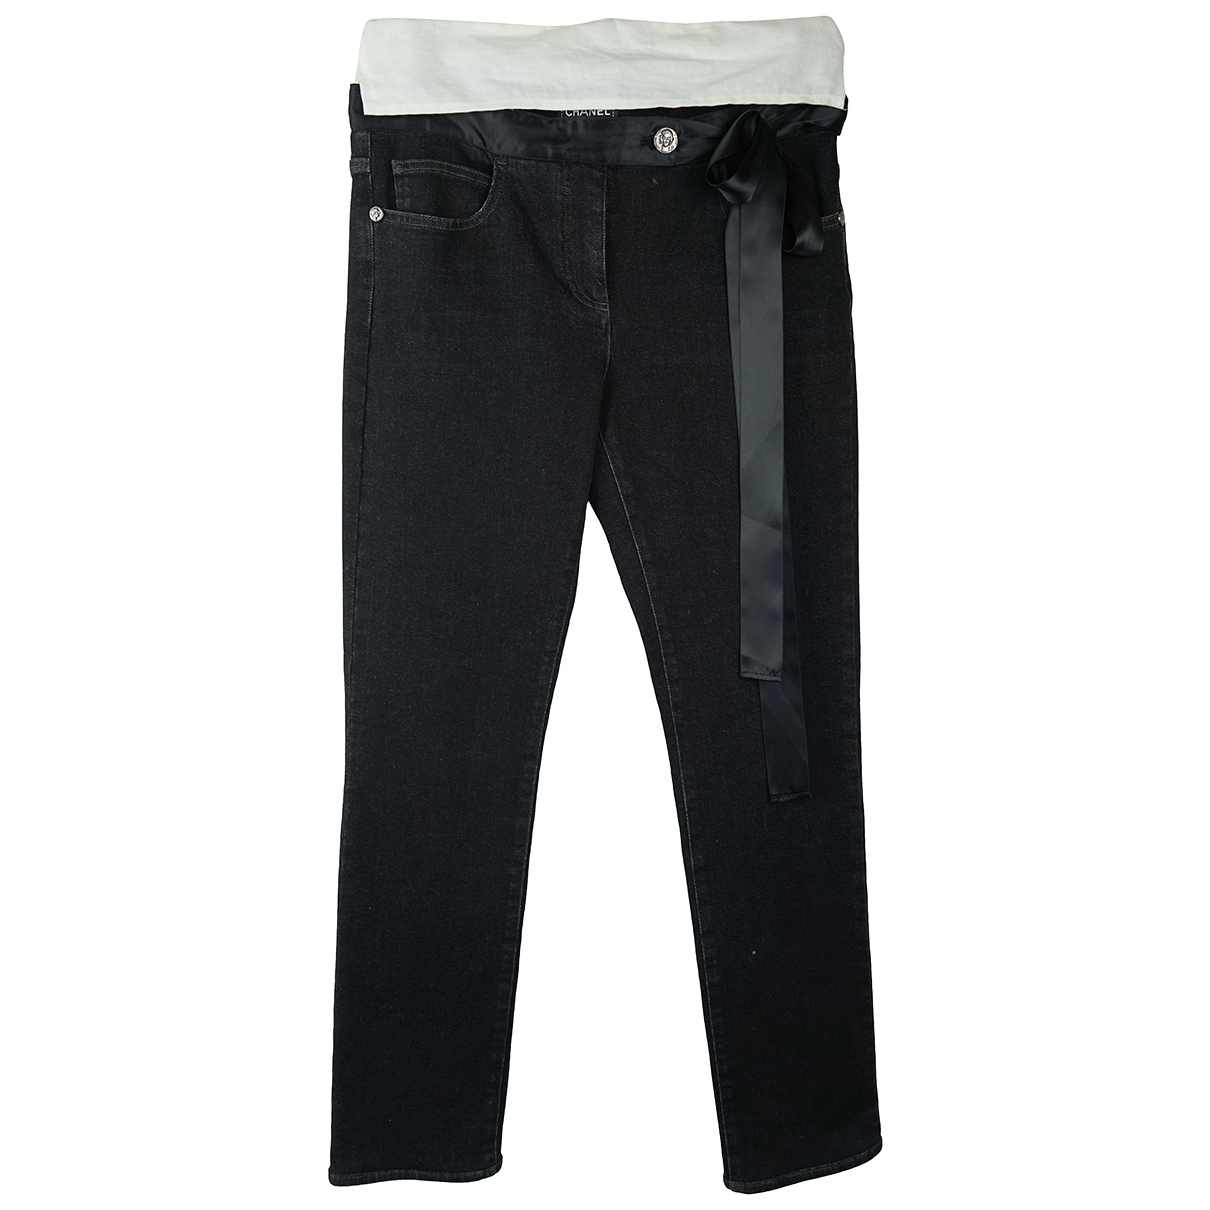 Chanel \N Anthracite Cotton Jeans for Women 40 FR